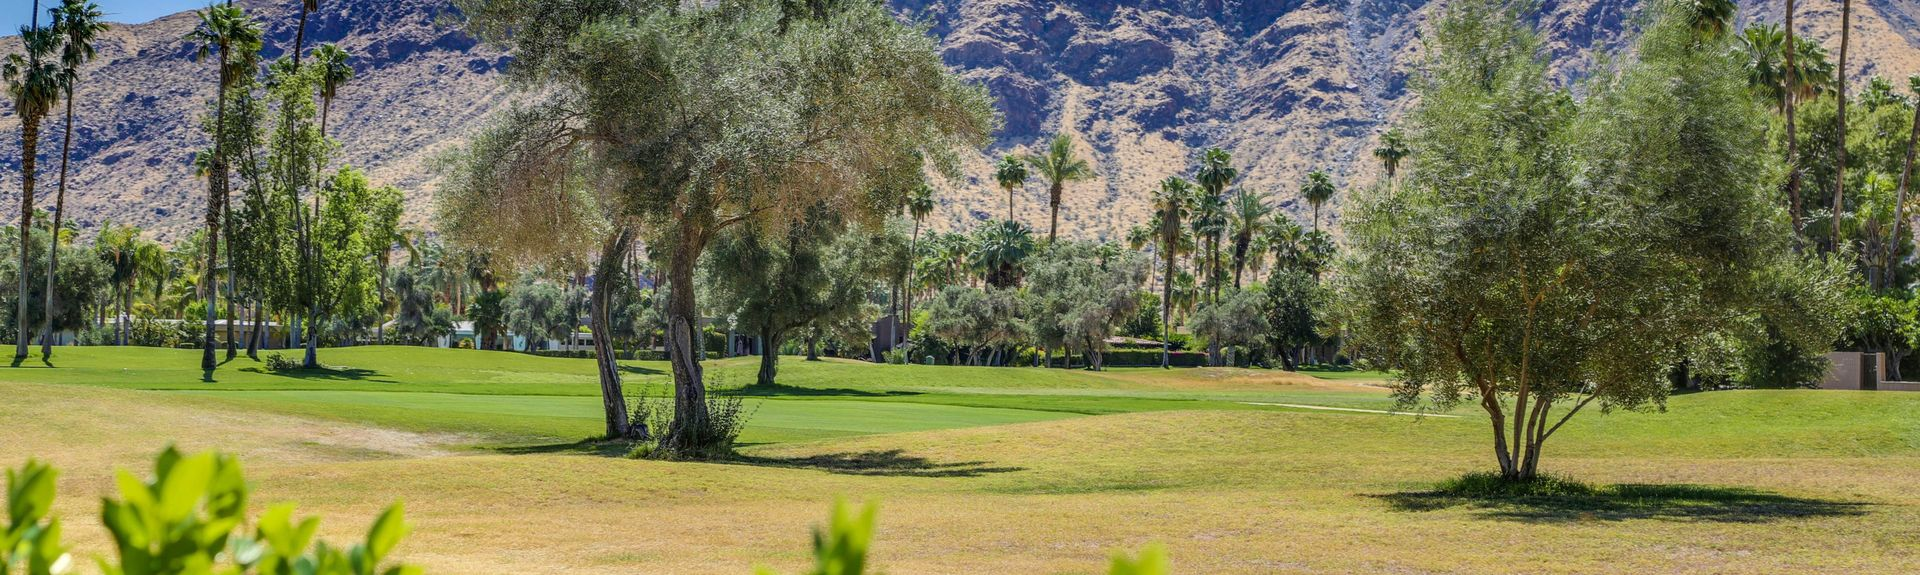 Indian Canyons Golf Resort, Palm Springs, CA, USA